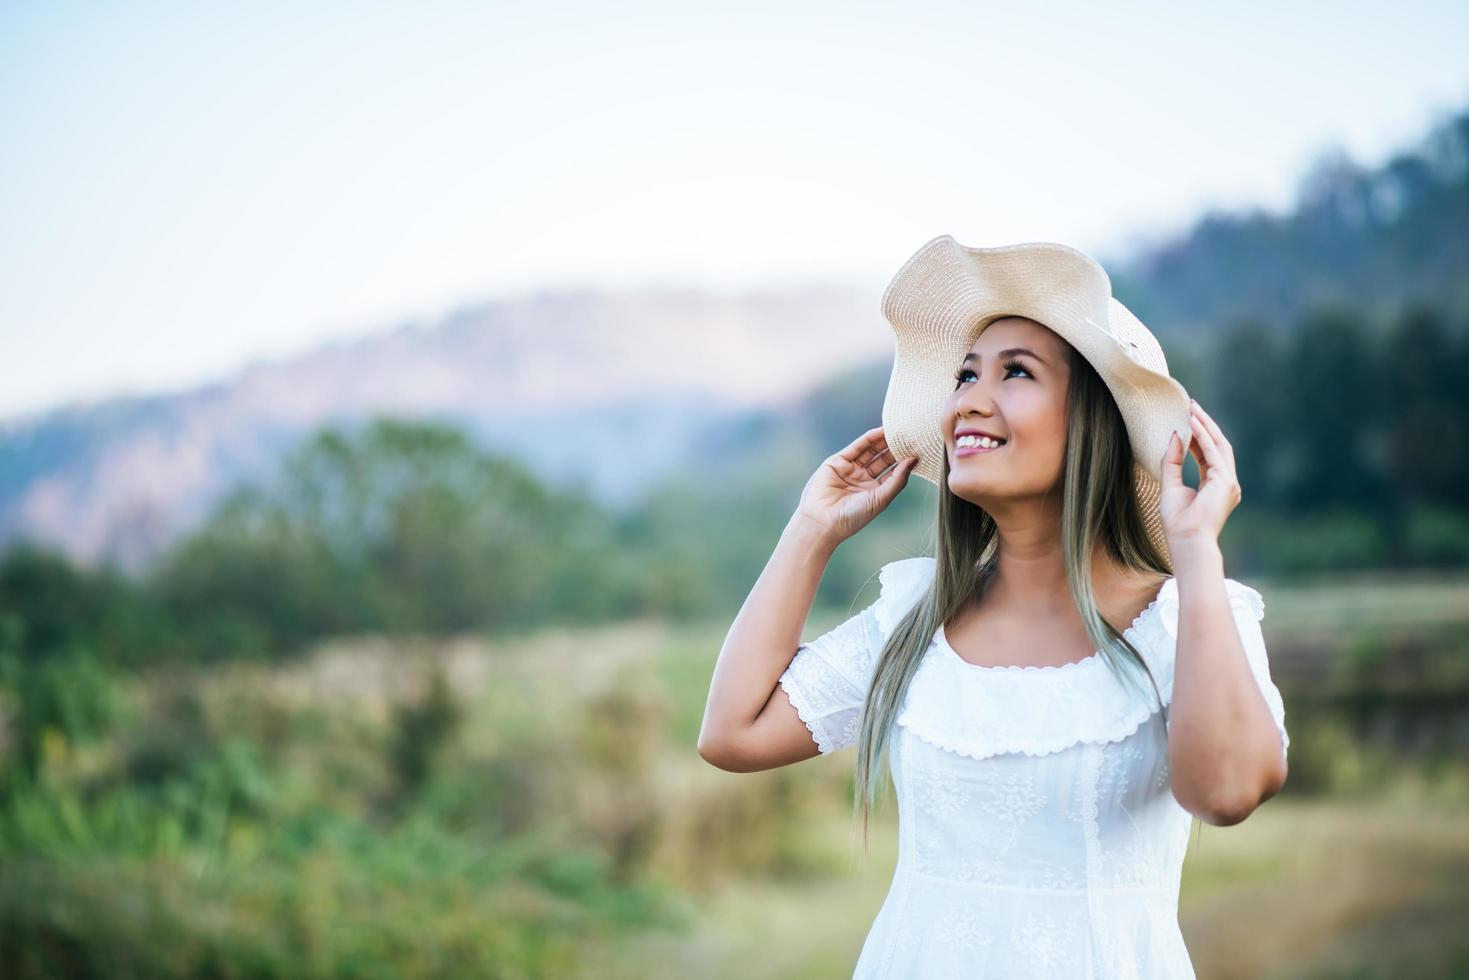 Woman in the hat happiness in the nature photo